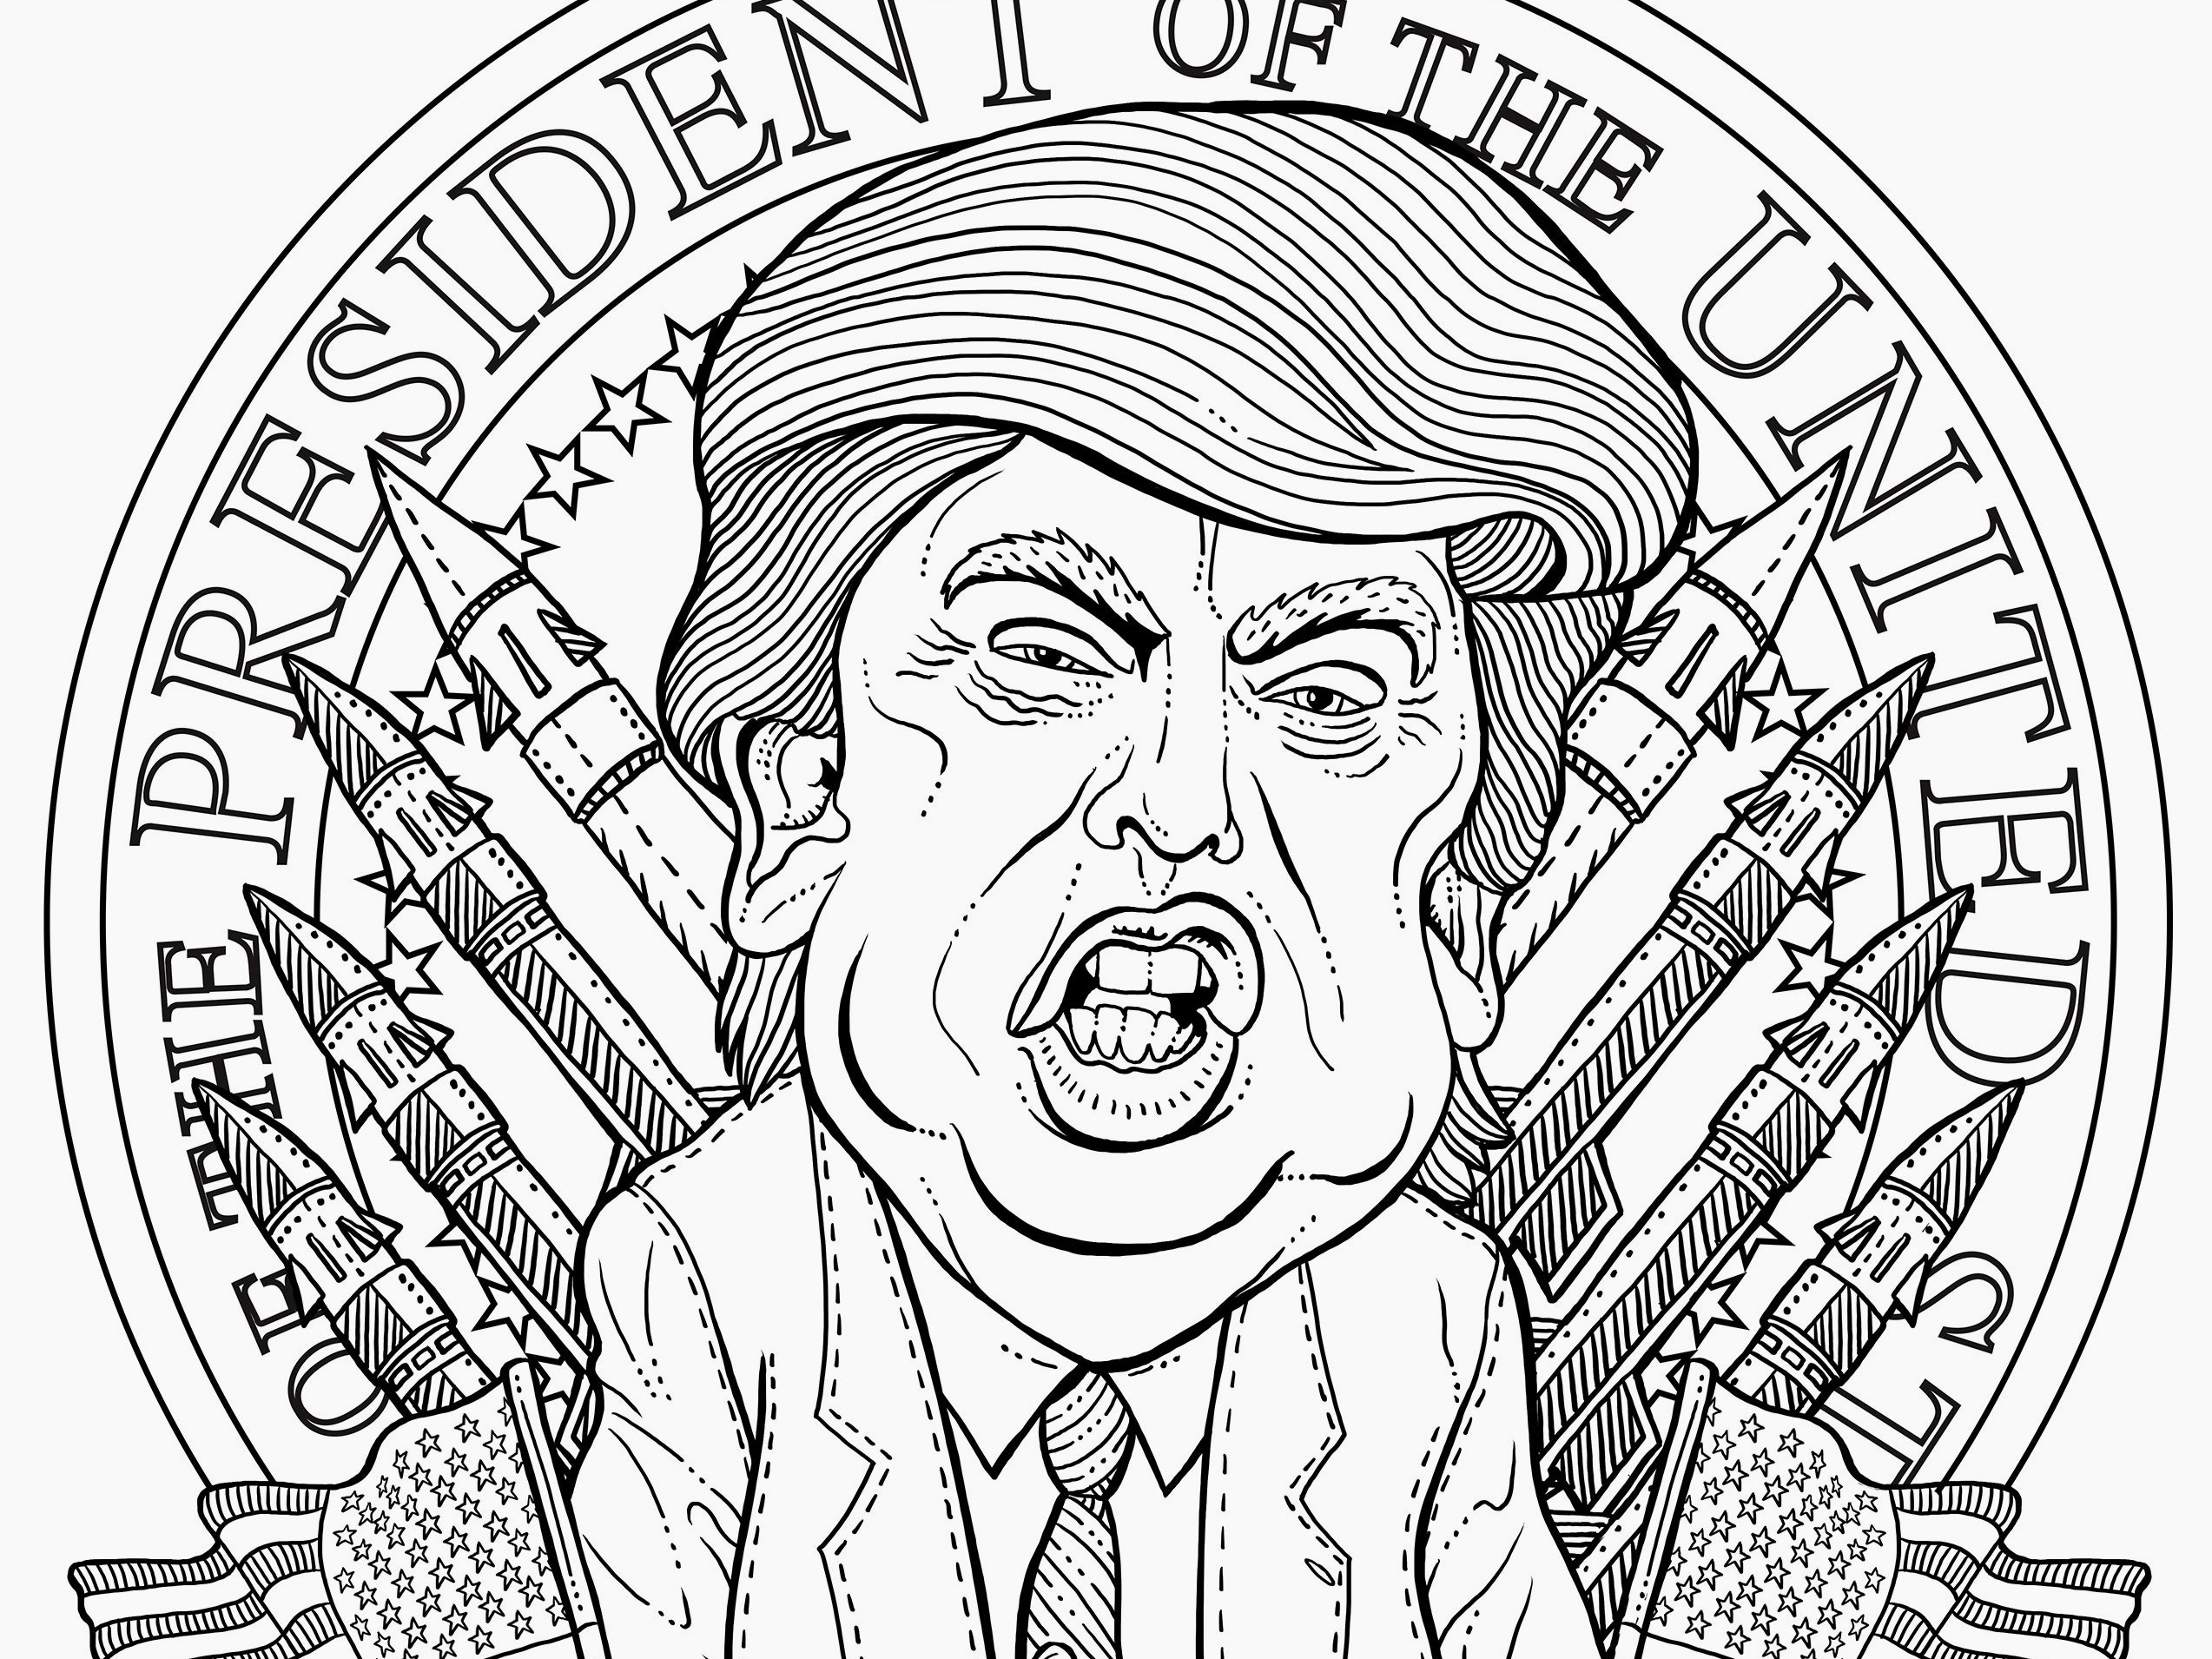 the most terrifying adult coloring book imagineable gq trumpcoloringbook tout jasmine coloring pages Coloring Book Page